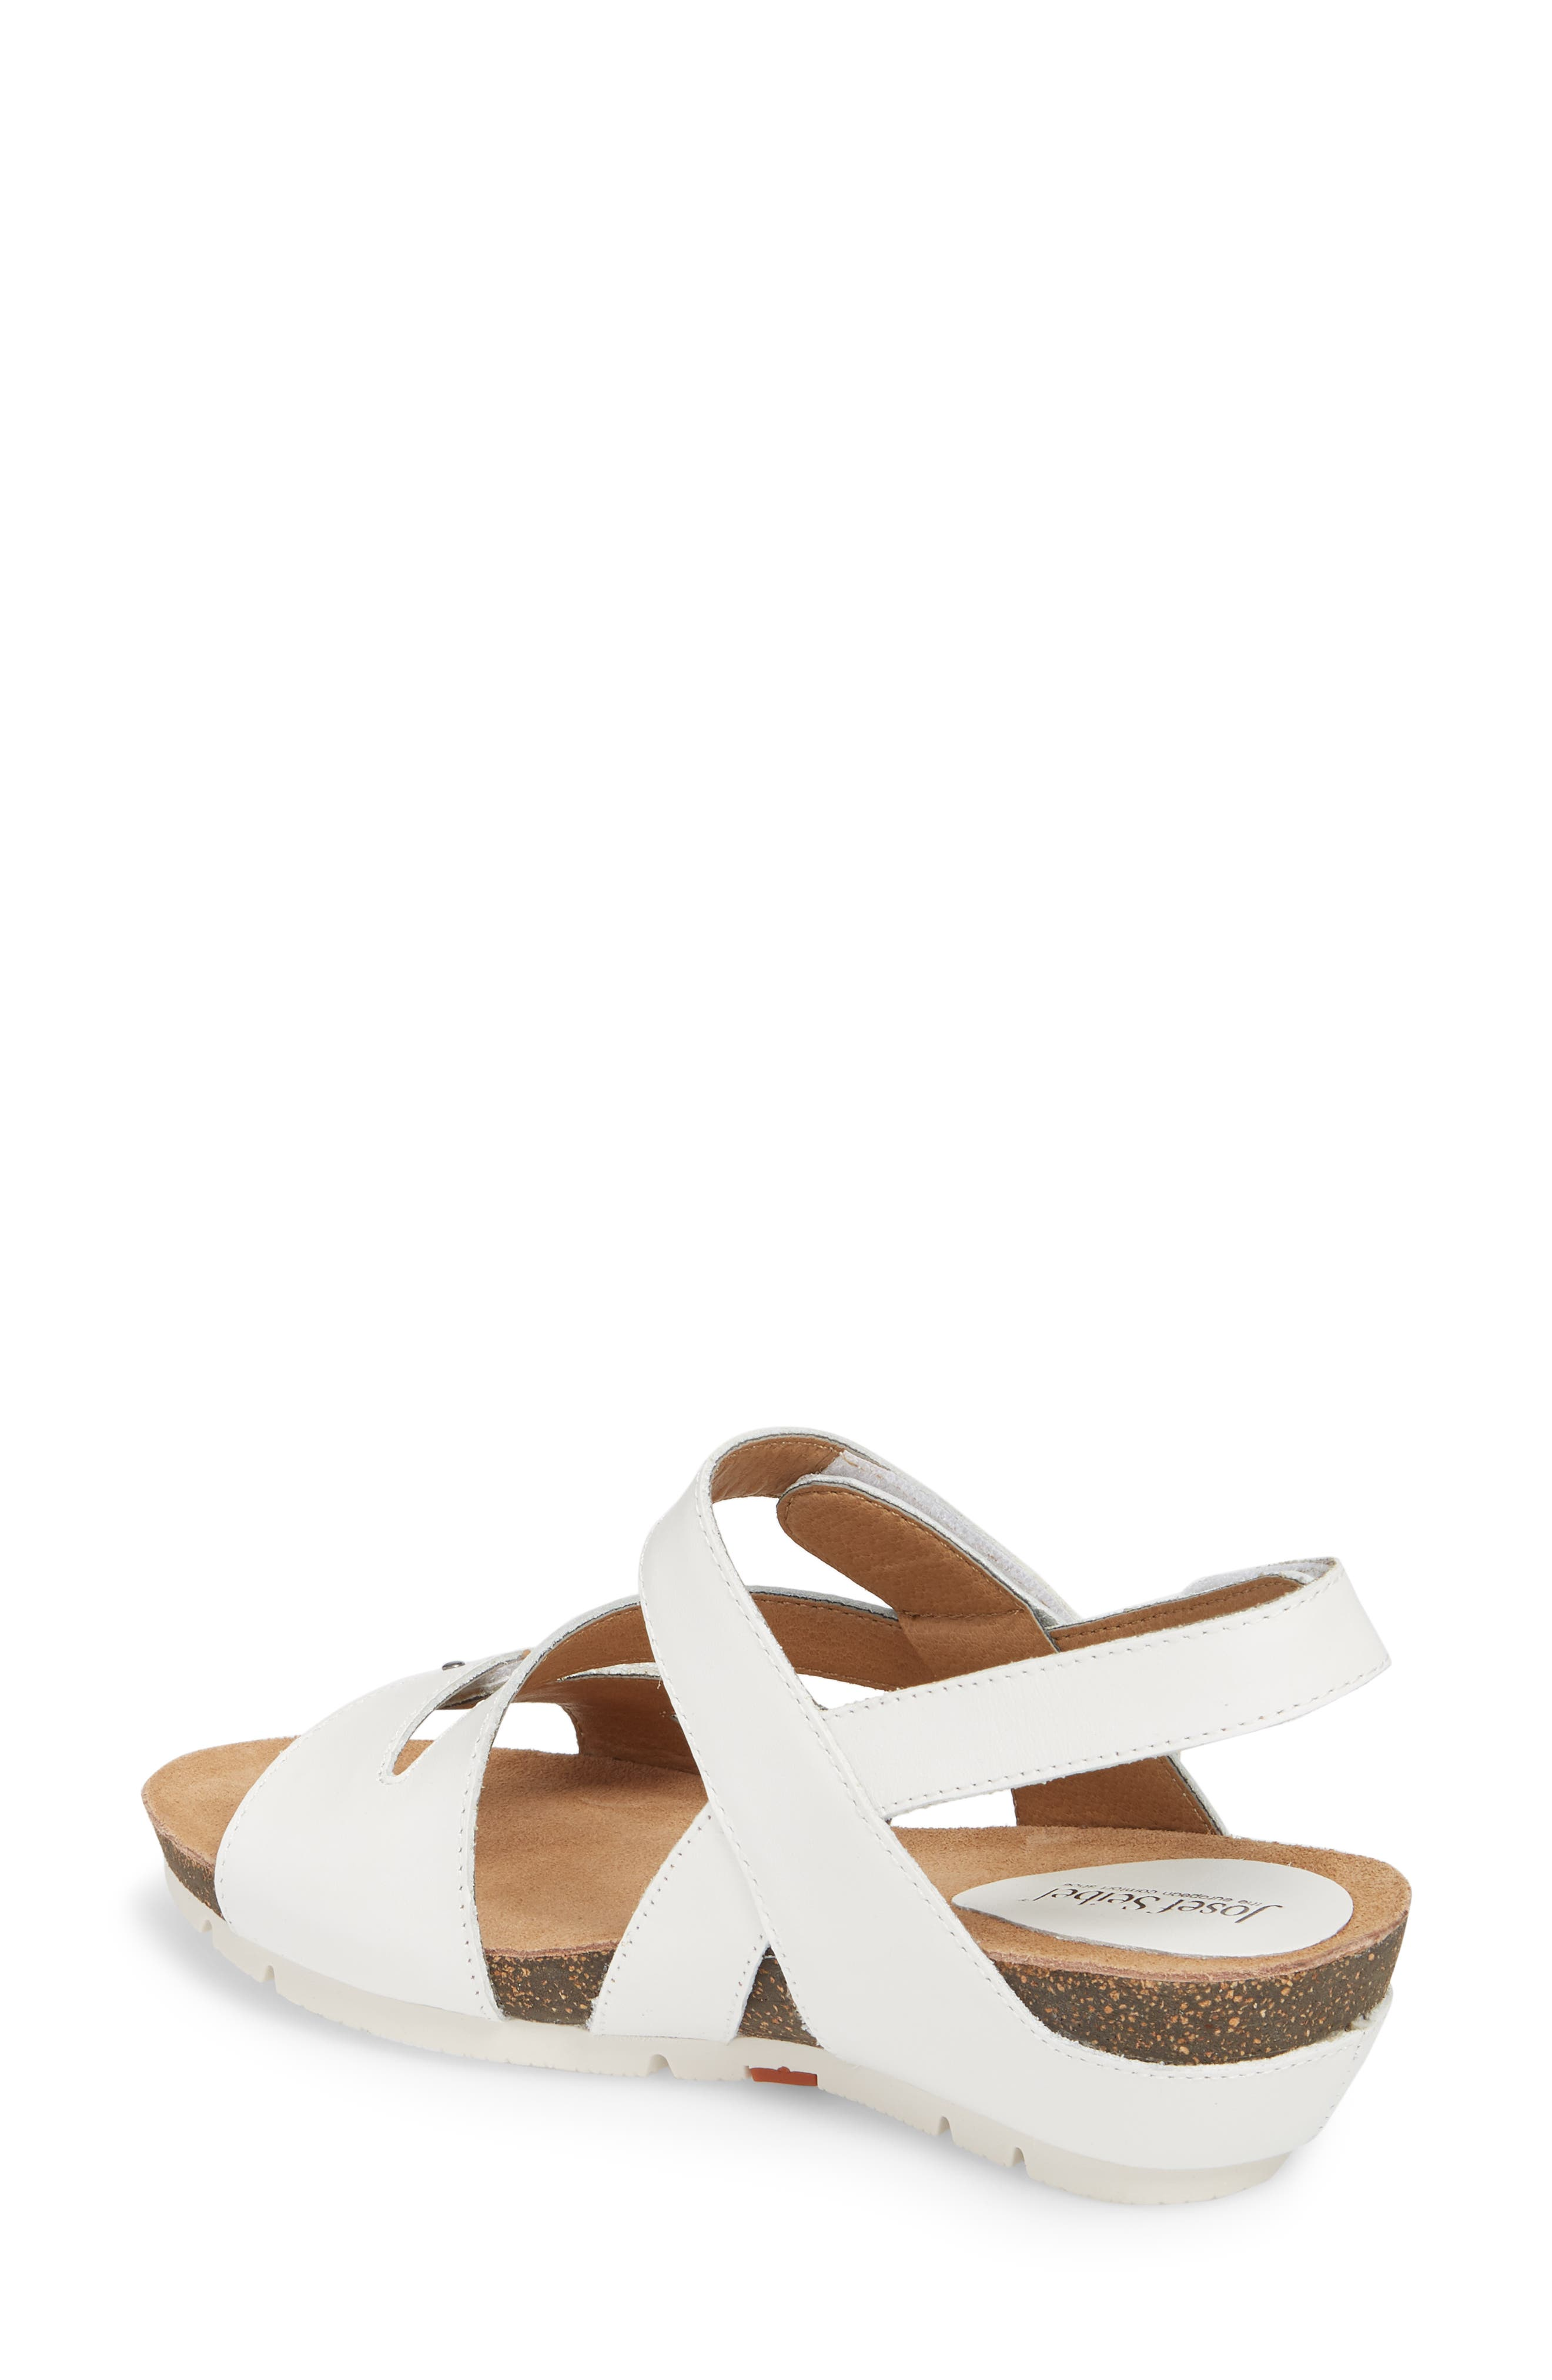 Alternate Image 2  - Josef Seibel Hailey 33 Sandal (Women)